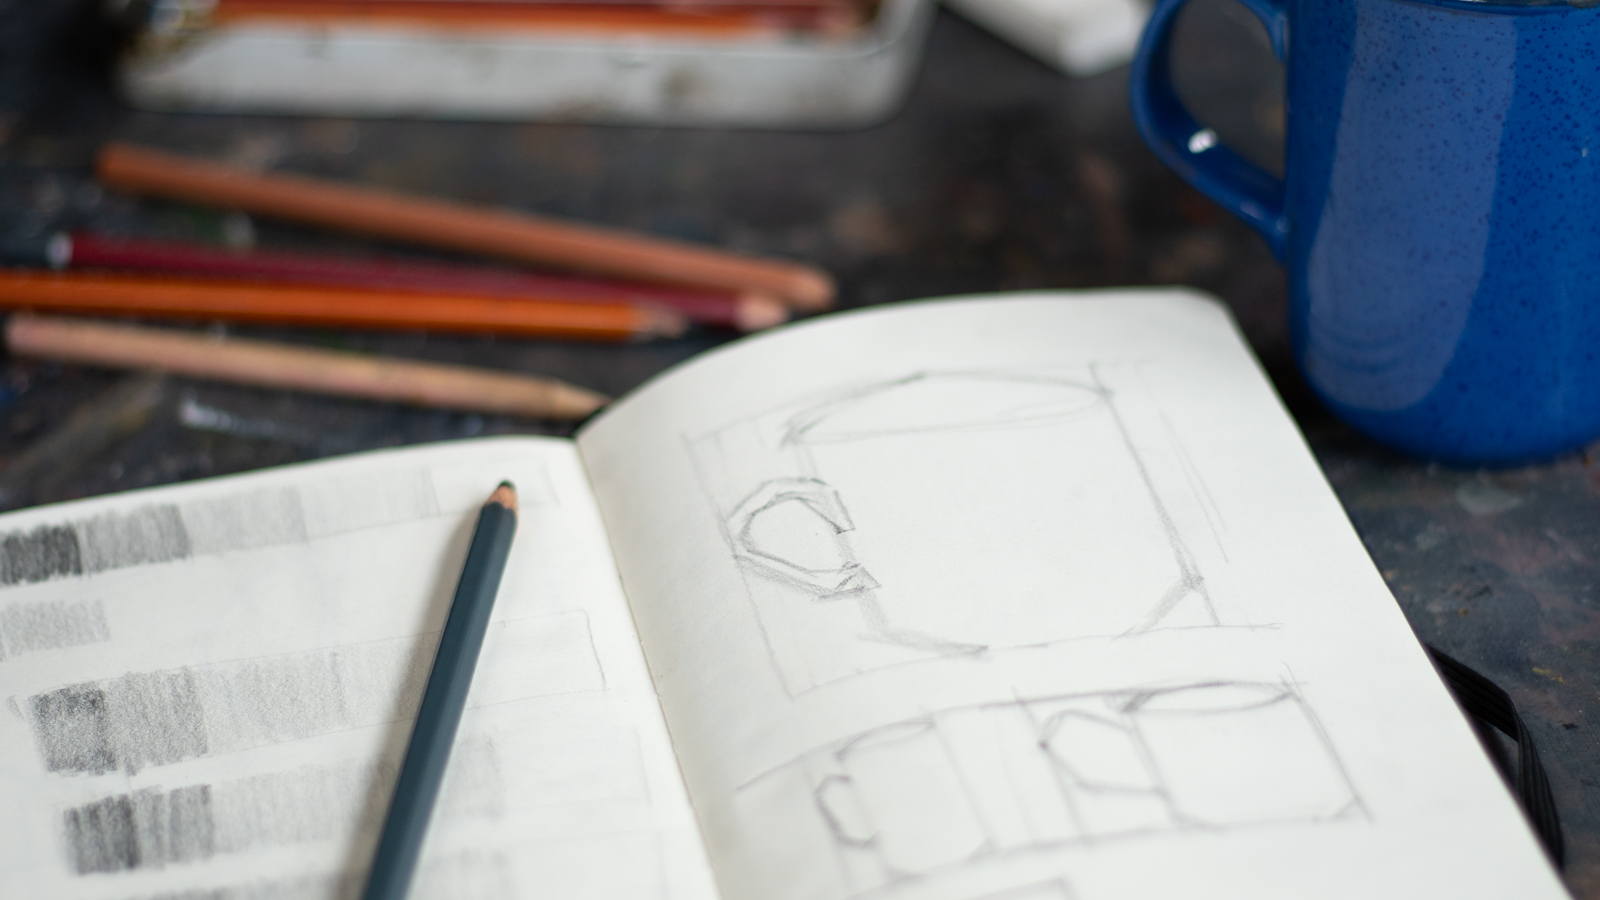 proportion drawing of mug